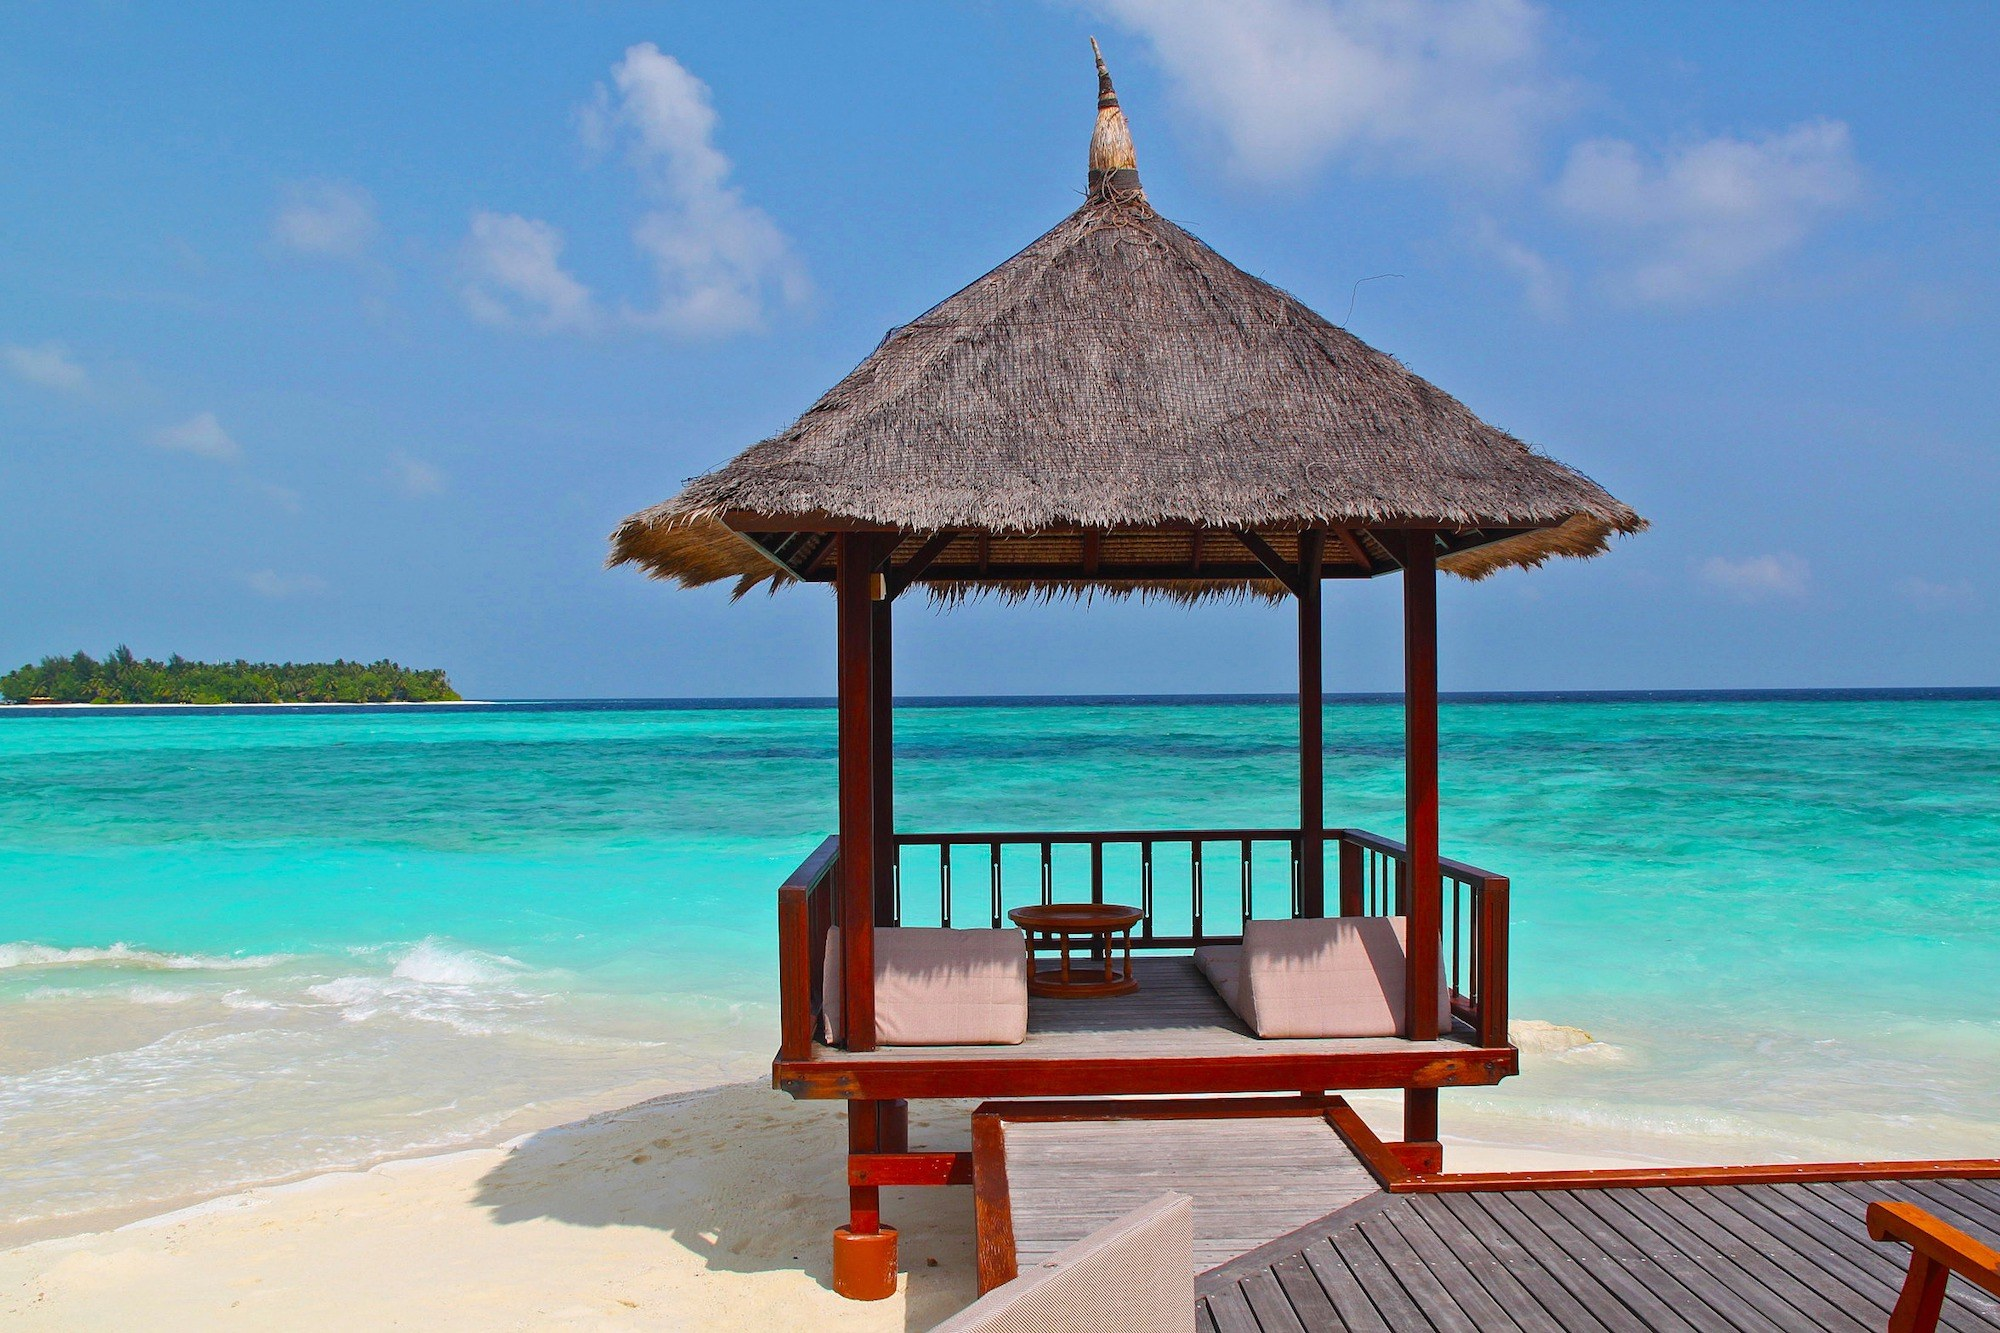 Maldives Beach Hut